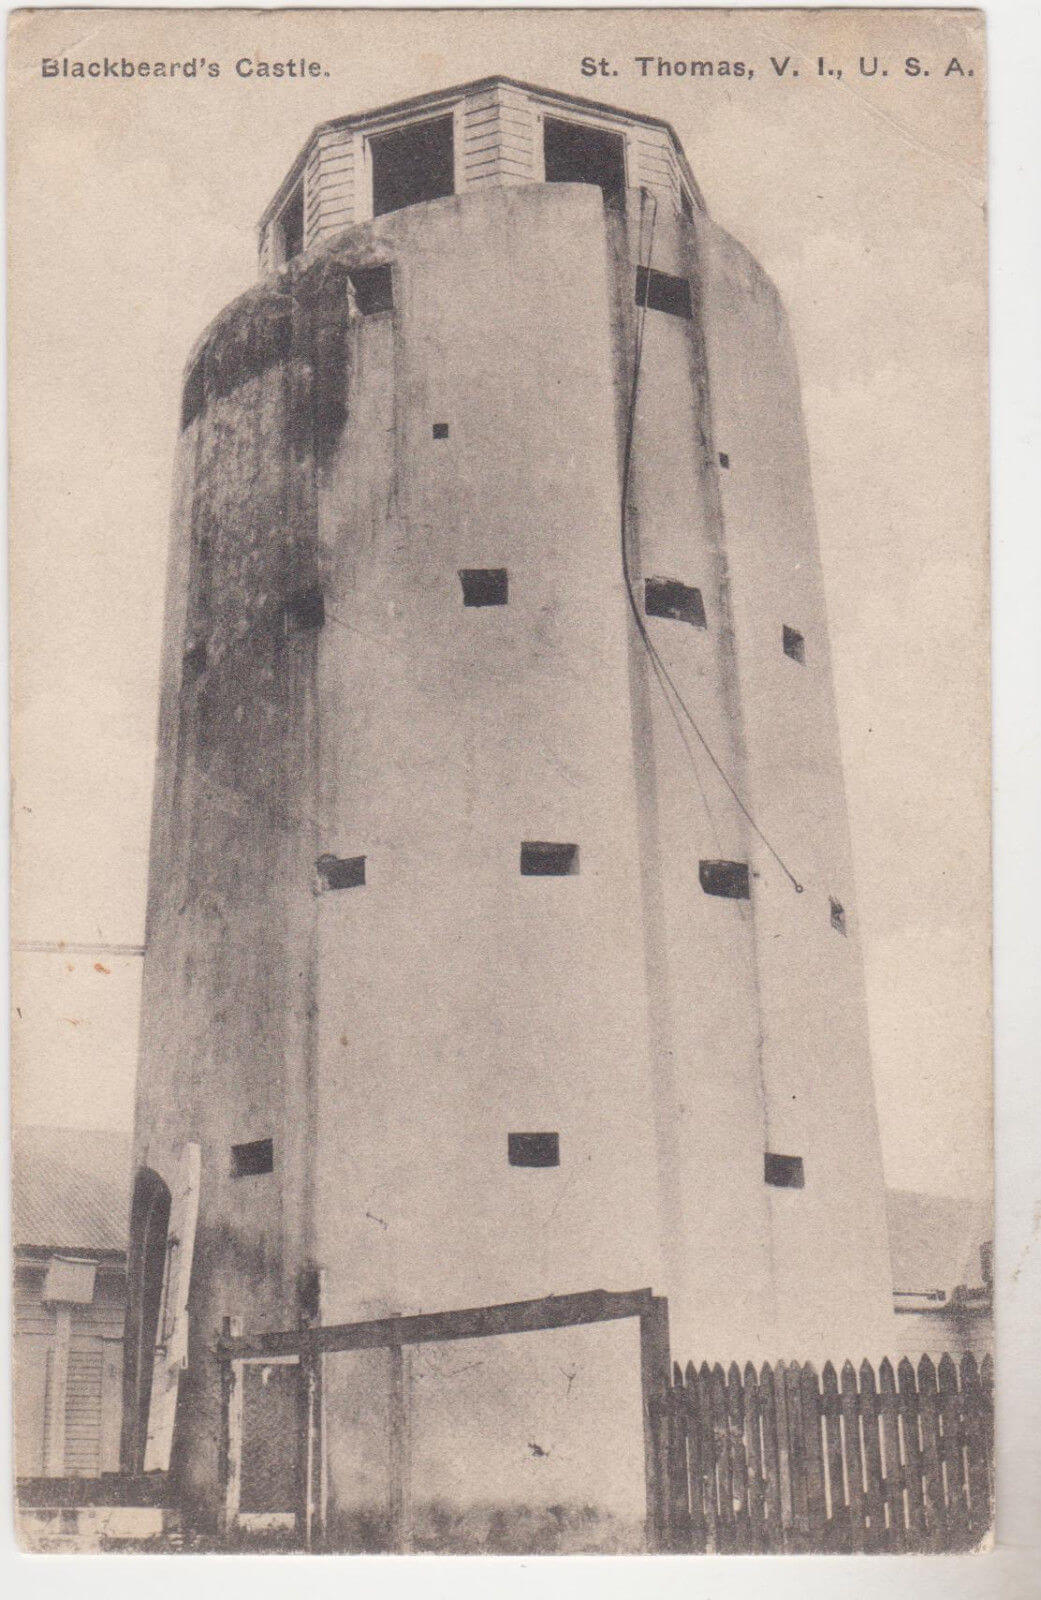 Blackbeard's Castle Postcard (1922)